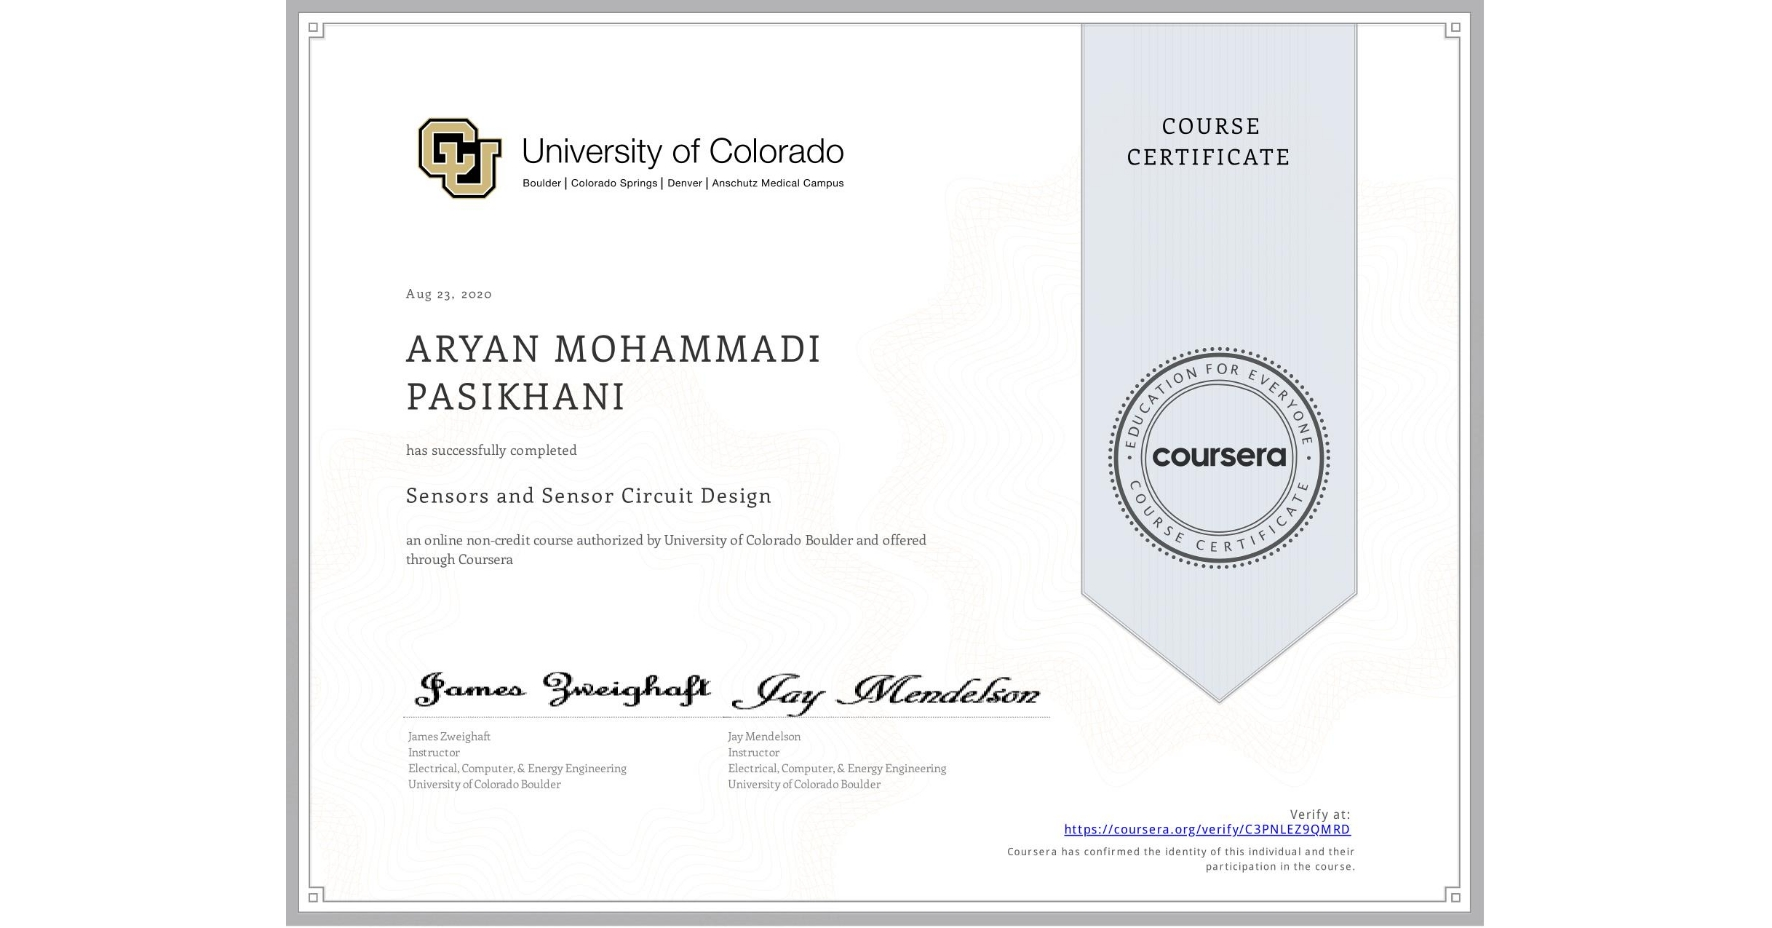 View certificate for ARYAN MOHAMMADI PASIKHANI, Sensors and Sensor Circuit Design, an online non-credit course authorized by University of Colorado Boulder and offered through Coursera